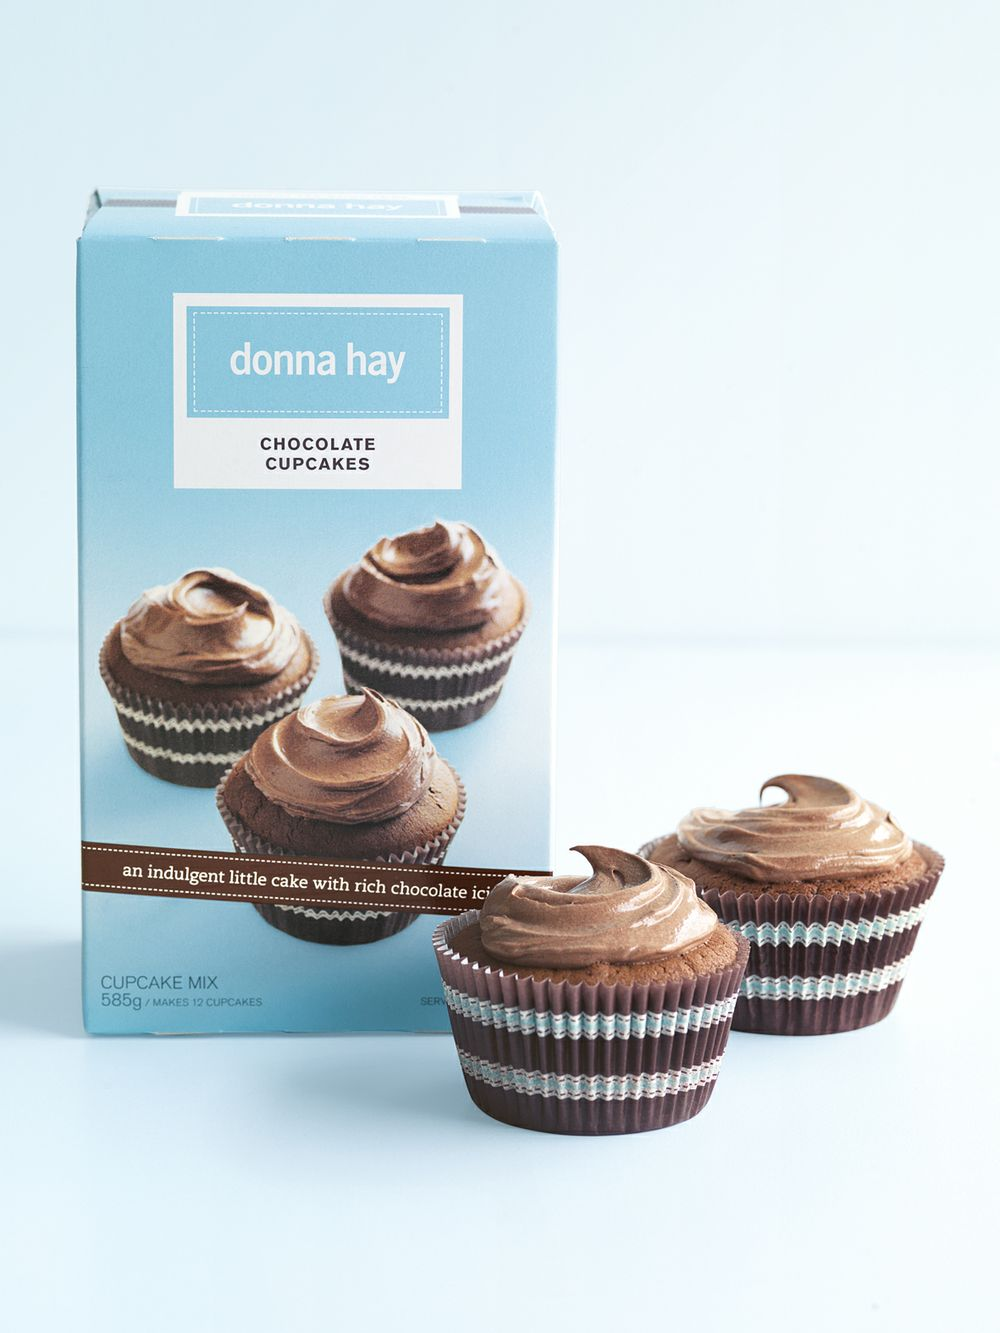 Win 1 of 5 Donna Hay Home-Bake Mix Packs!